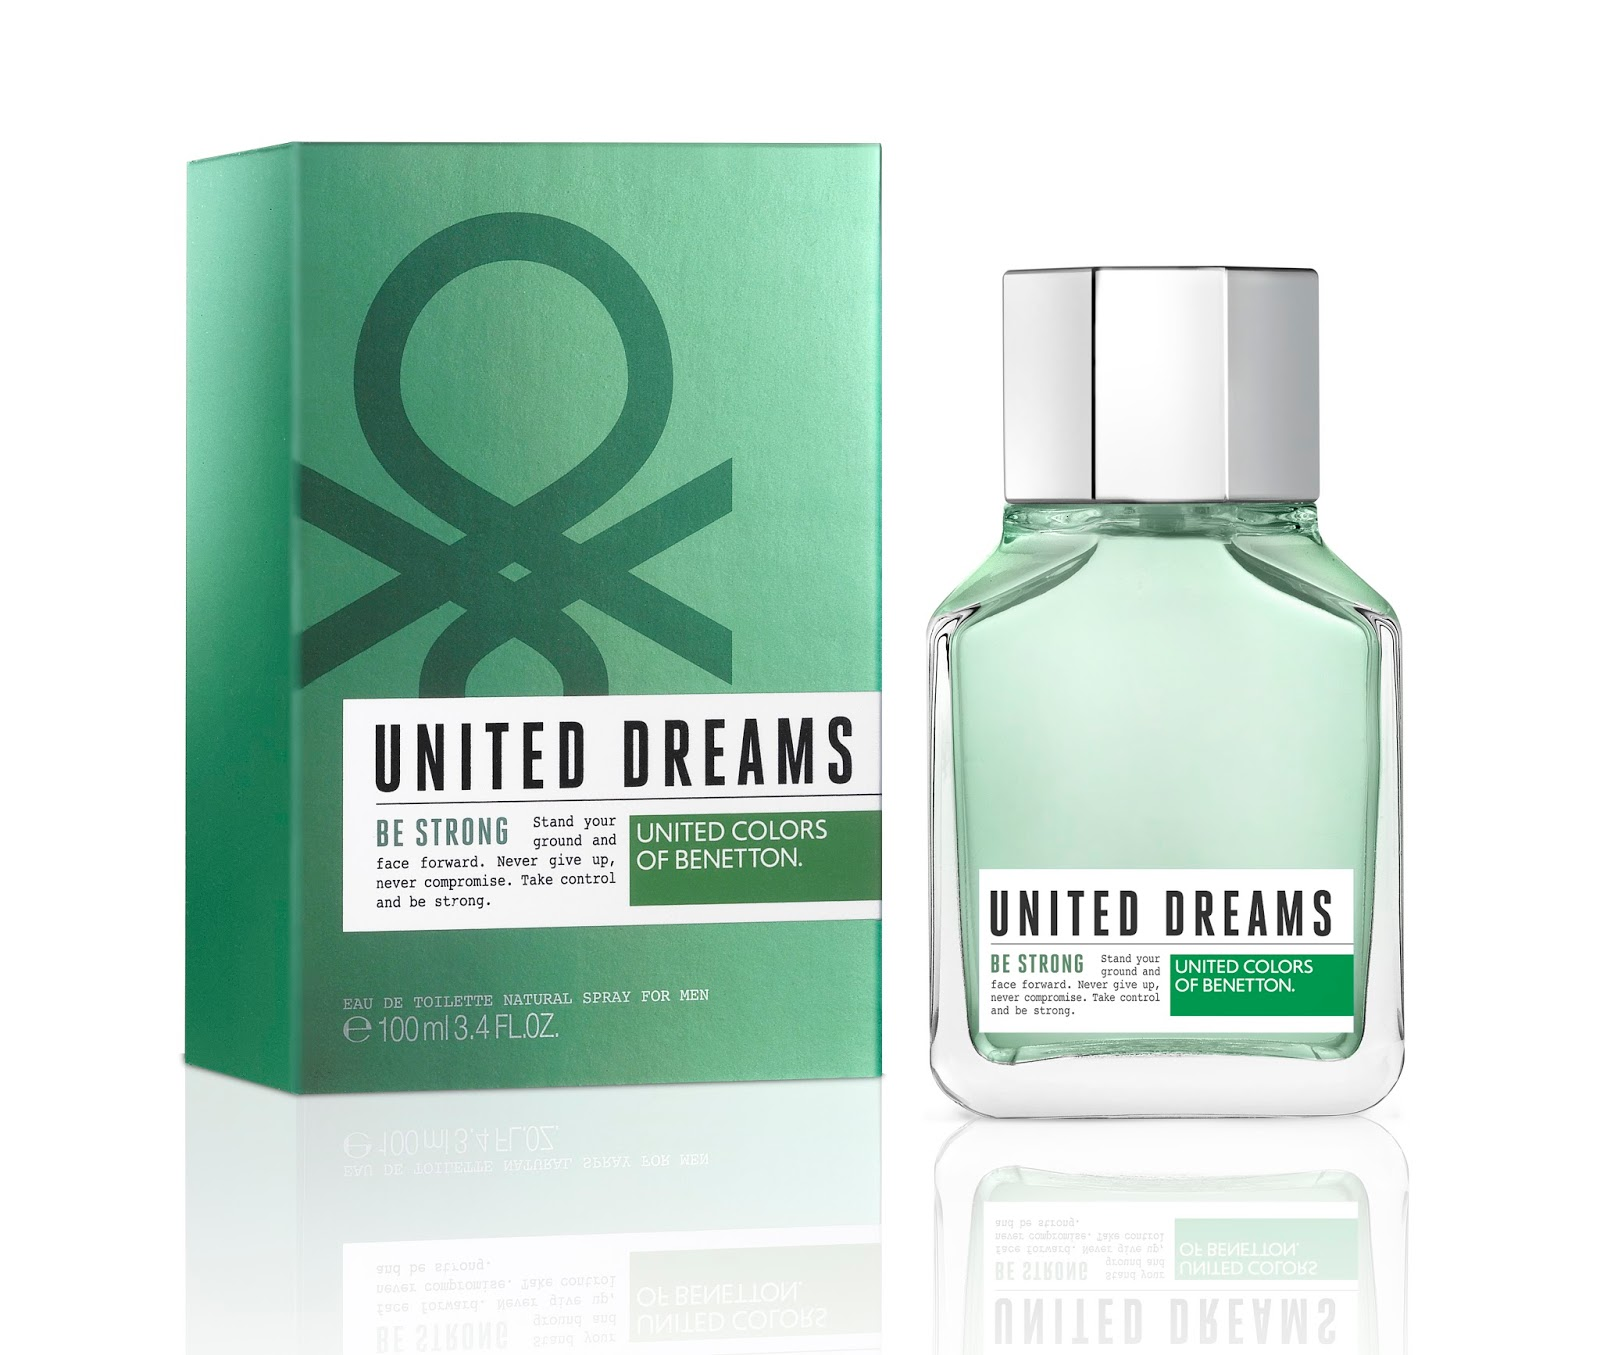 United Dreams Men Be Strong Benetton cologne